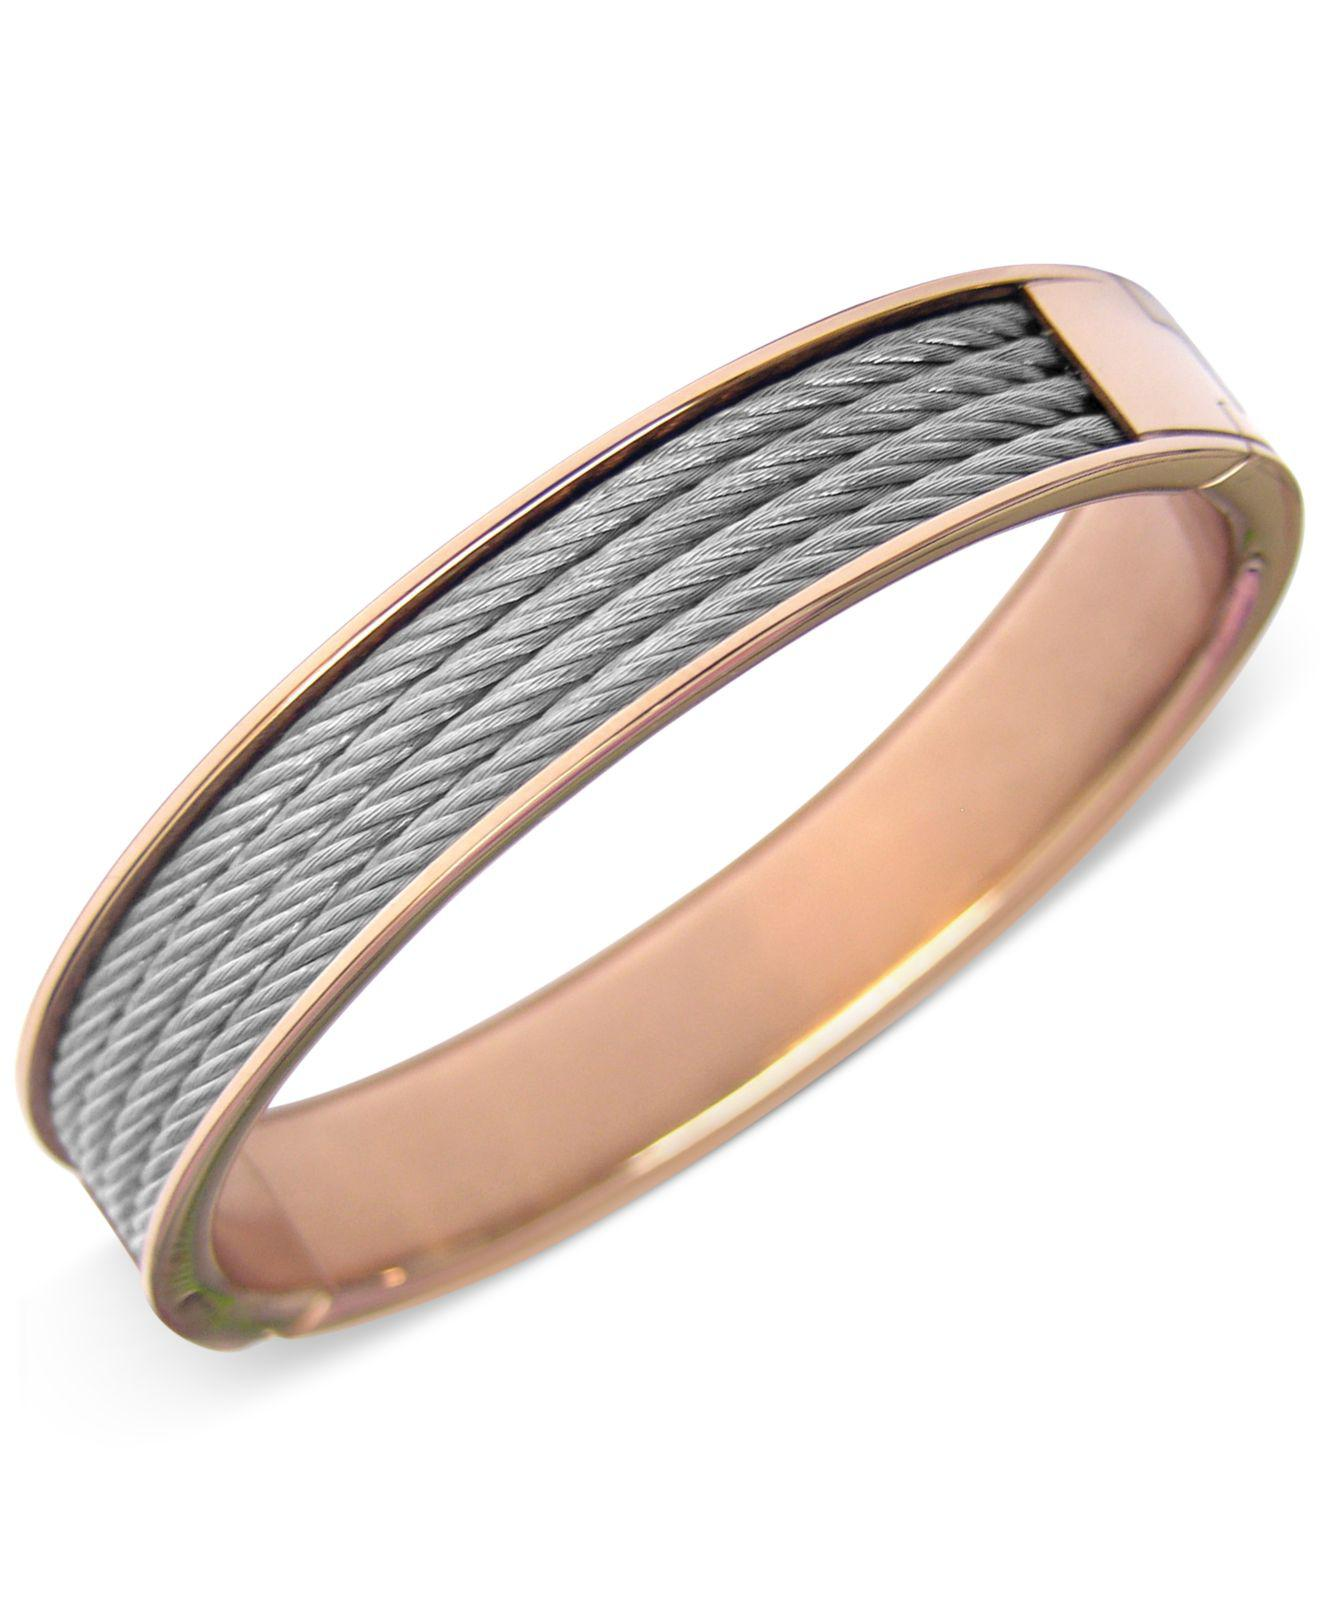 Lyst - Charriol Womens Two-tone Cable Bangle Bracelet in Metallic